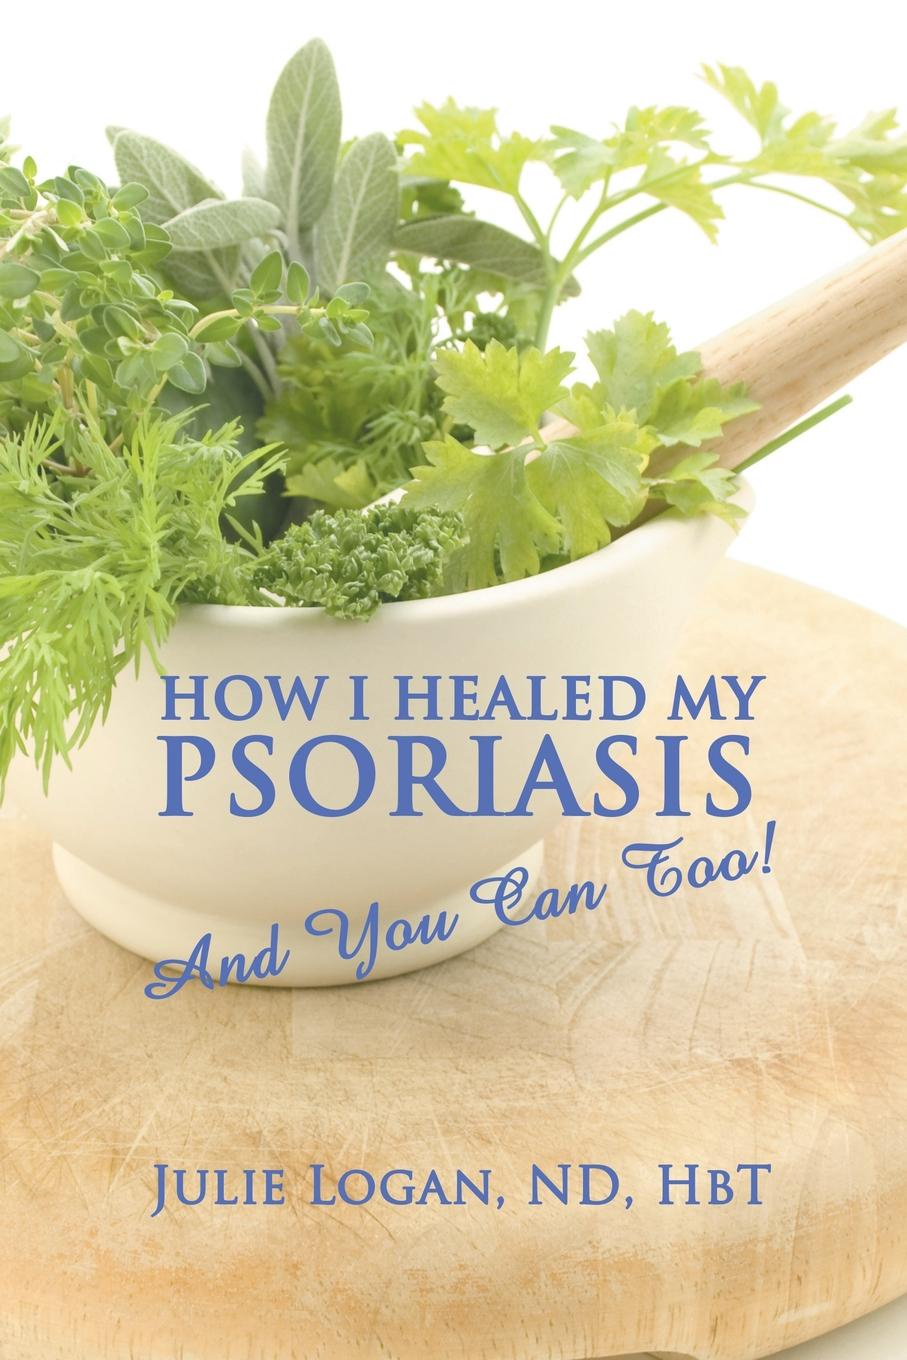 Nd Hbt Julie Logan How I Healed My Psoriasis. And You Can Too. logan meredith healed hearts